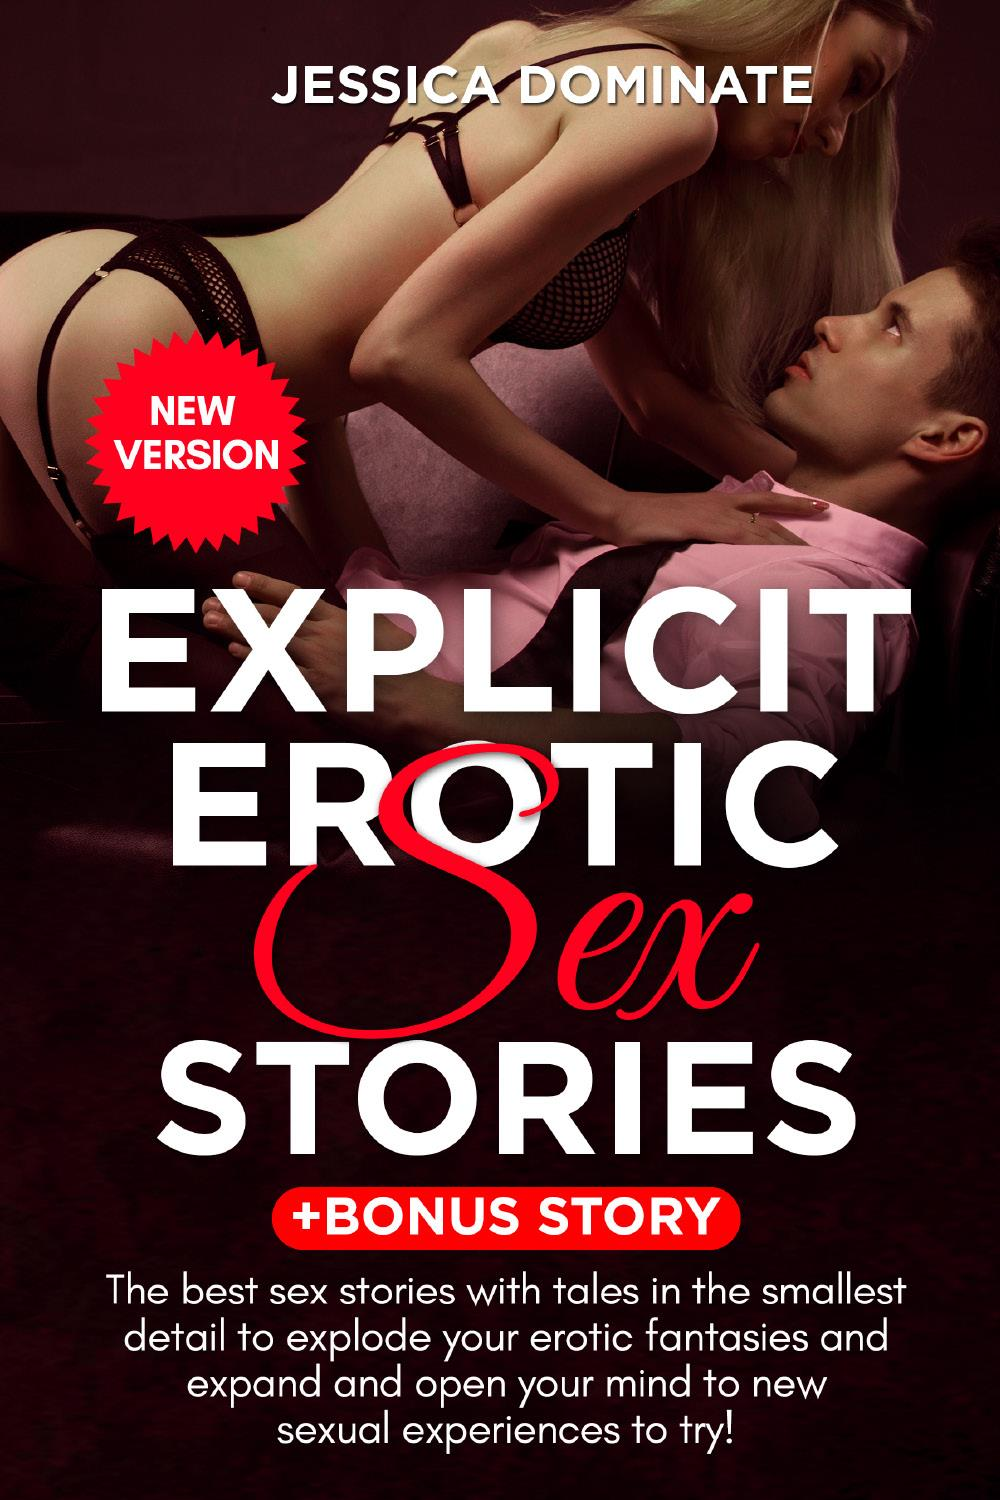 Explicit Erotic Sex Stories + Bonus Story. The best sex stories with tales in the smallest detail to explode your erotic fantasies and expand and open your mind to new sexual experiences to try! (New Version)